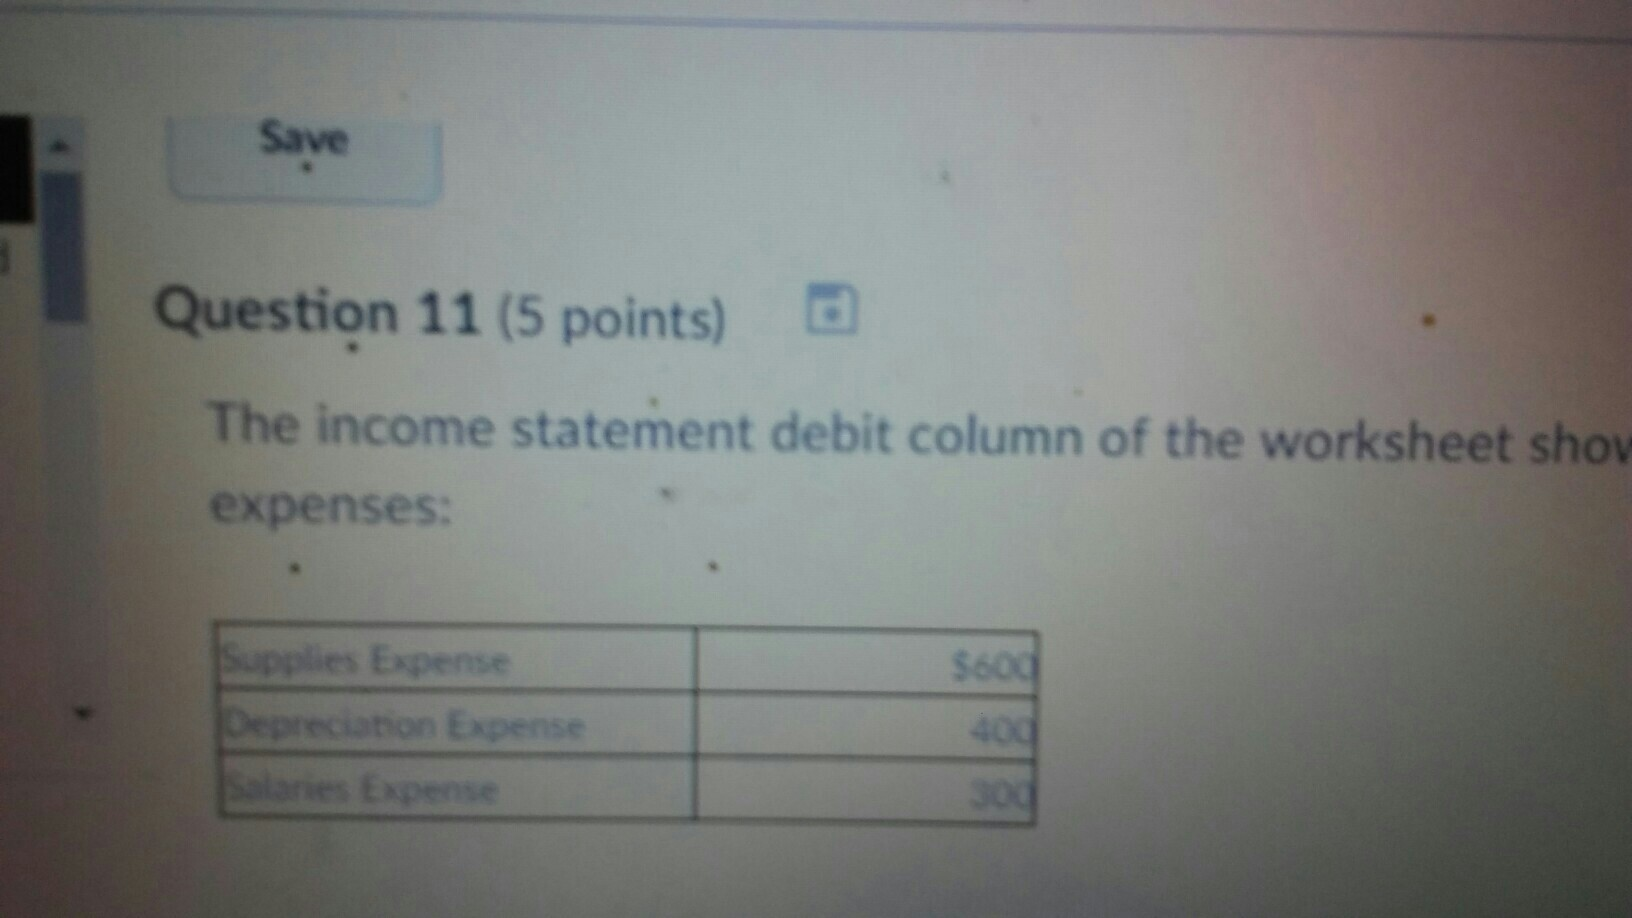 The Income Statement Debit Column Of The Worksheet Showed The Following